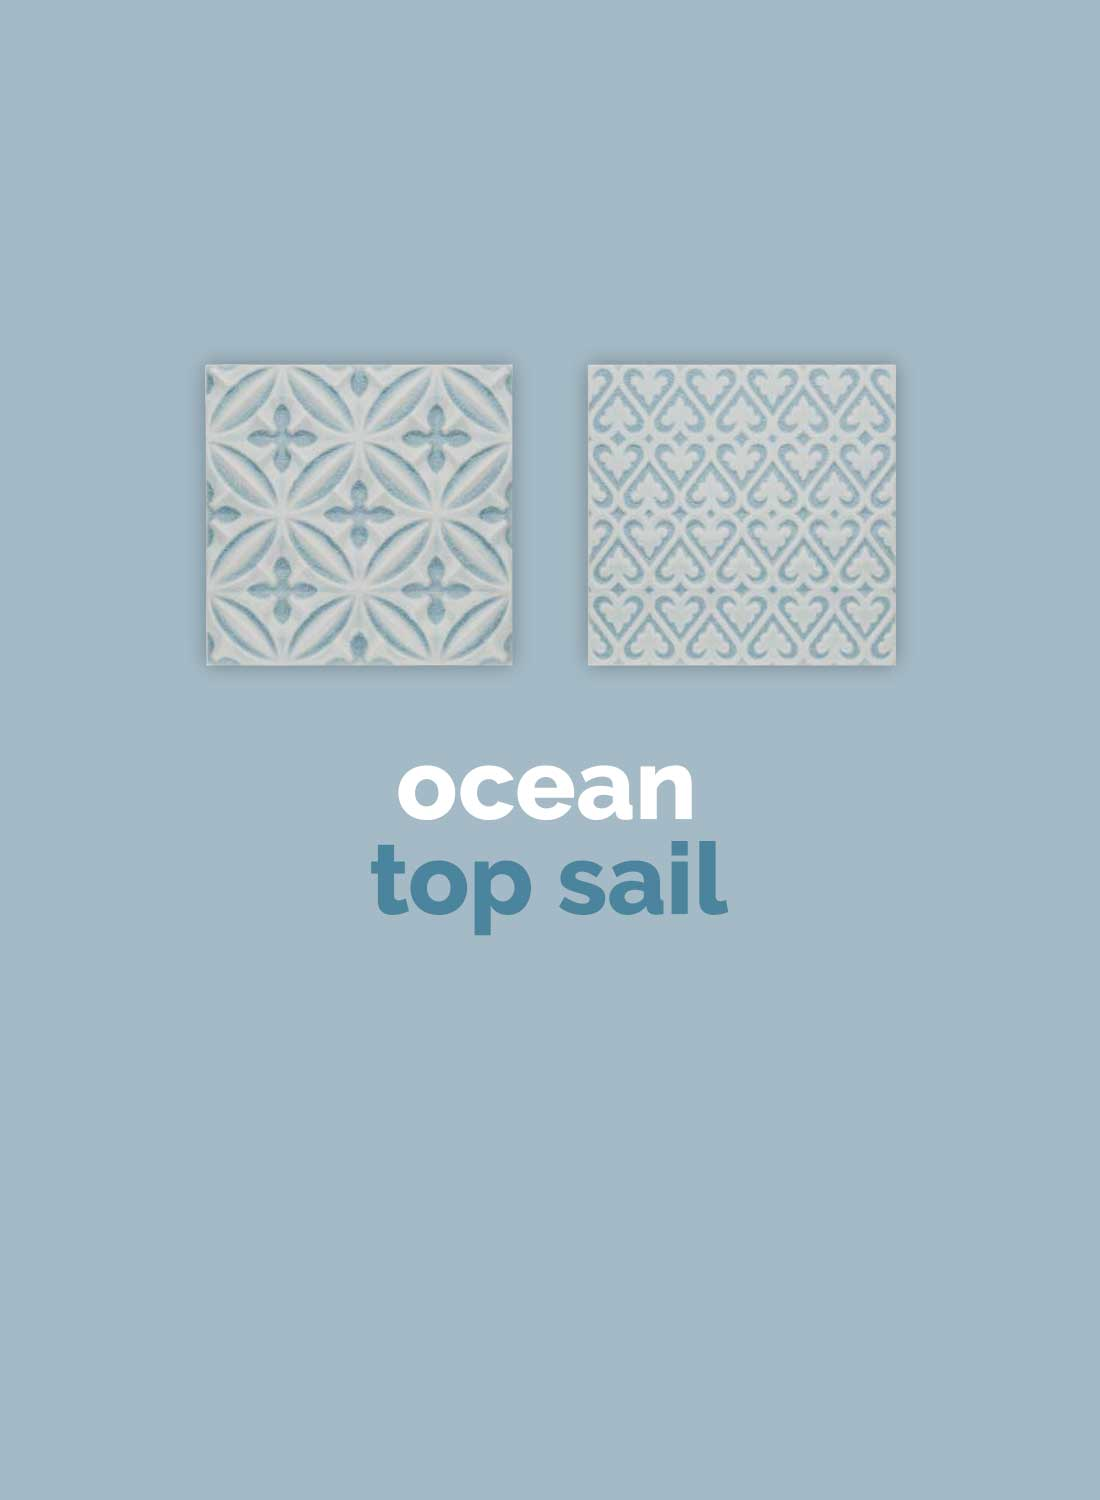 adex-ocean-top-sail